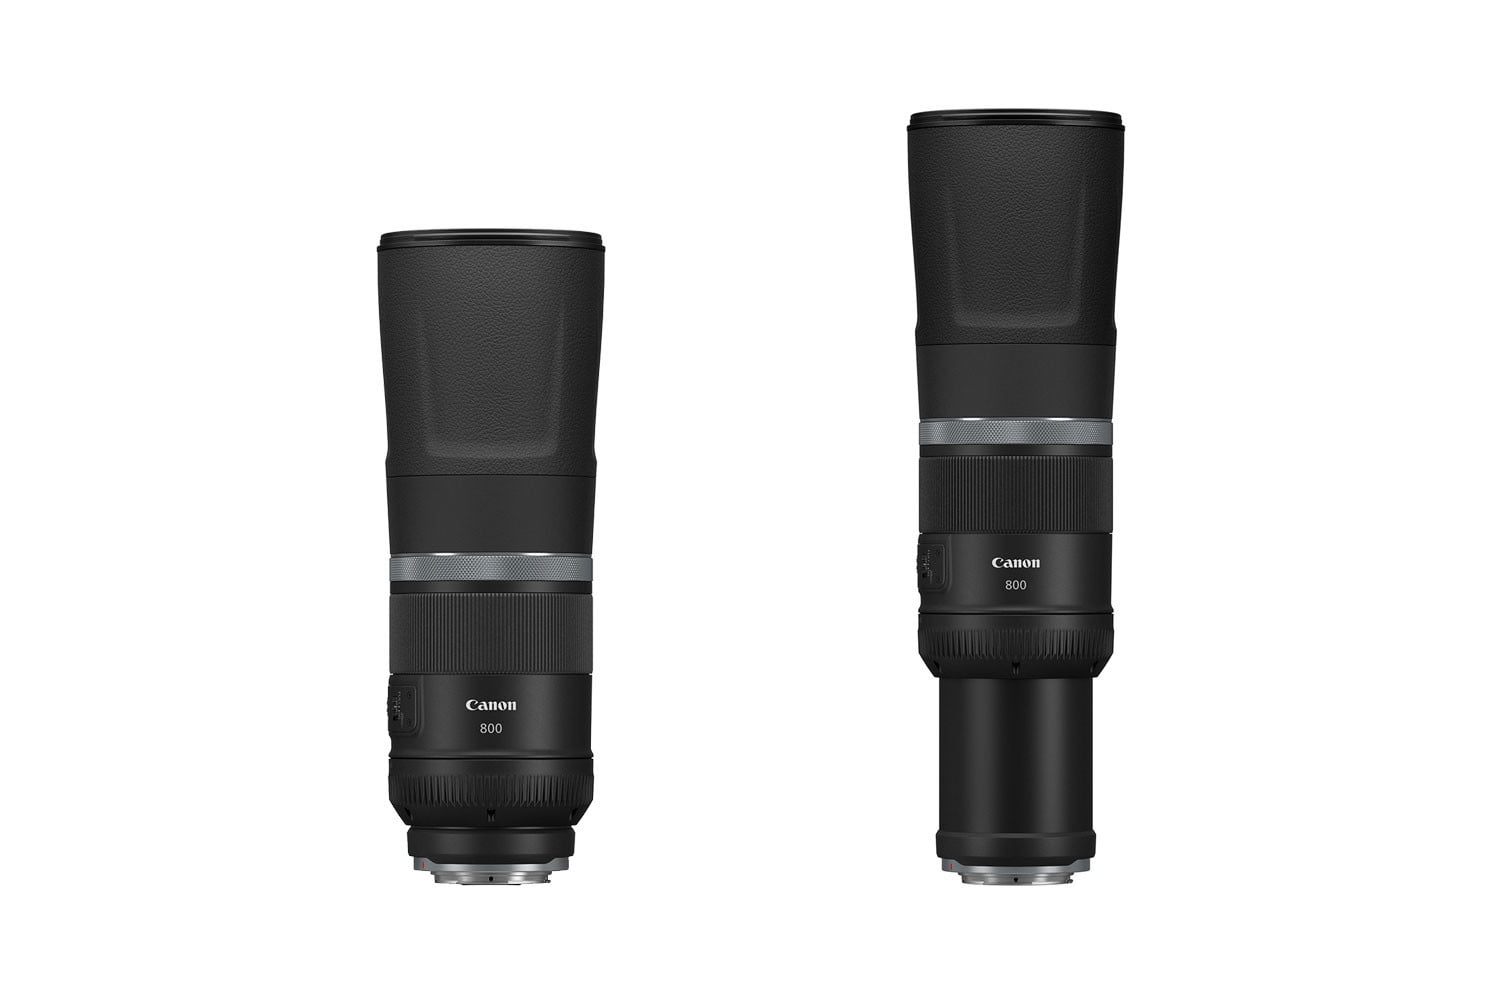 Canon RF 800mm f/11 retracted and extended on white background